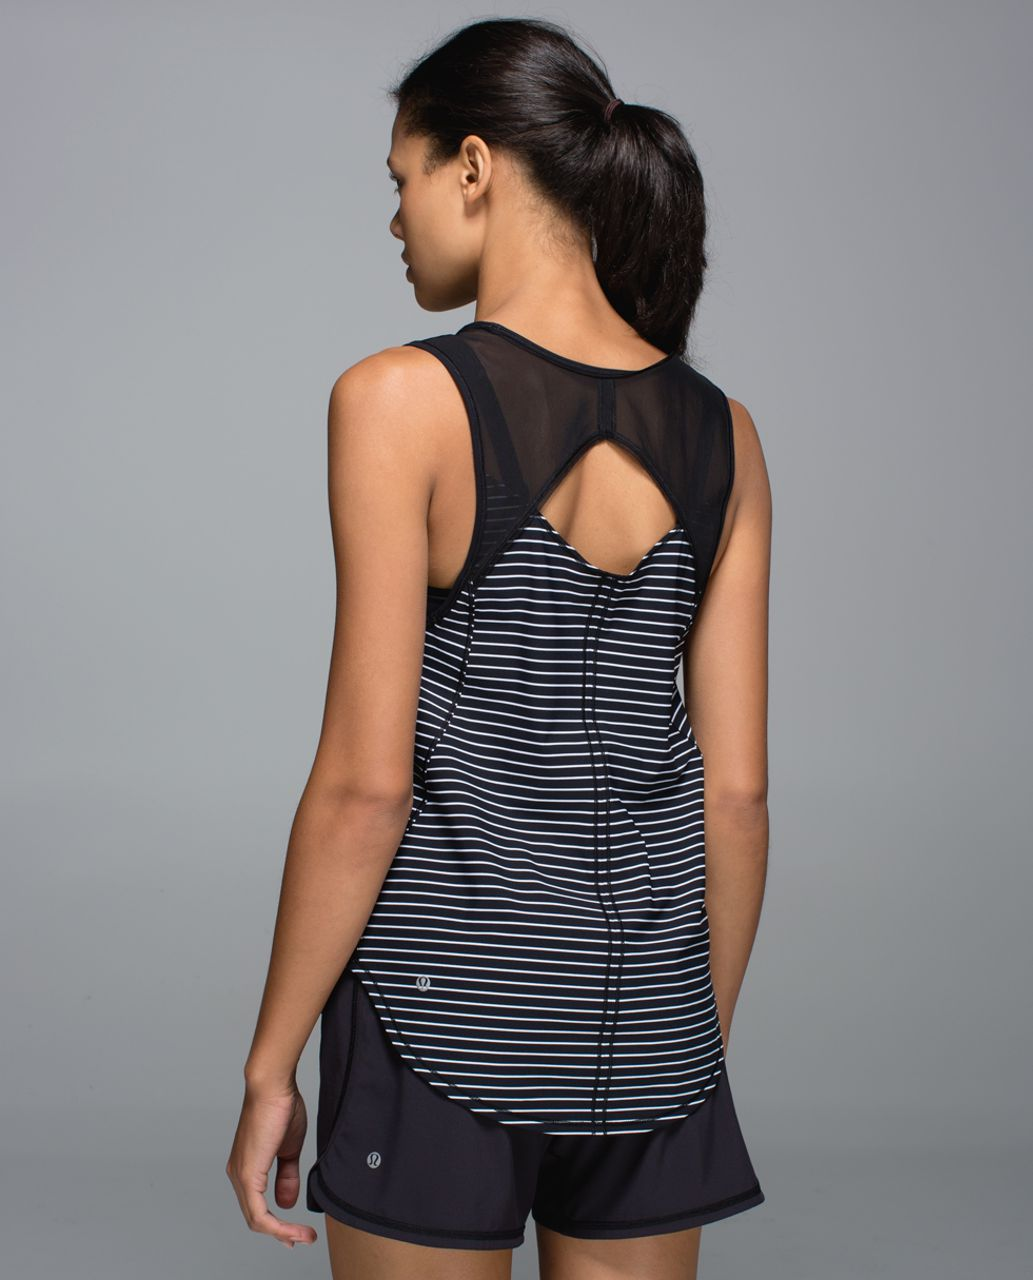 Lululemon Sculpt Tank - Parallel Stripe Printed Black White / Black